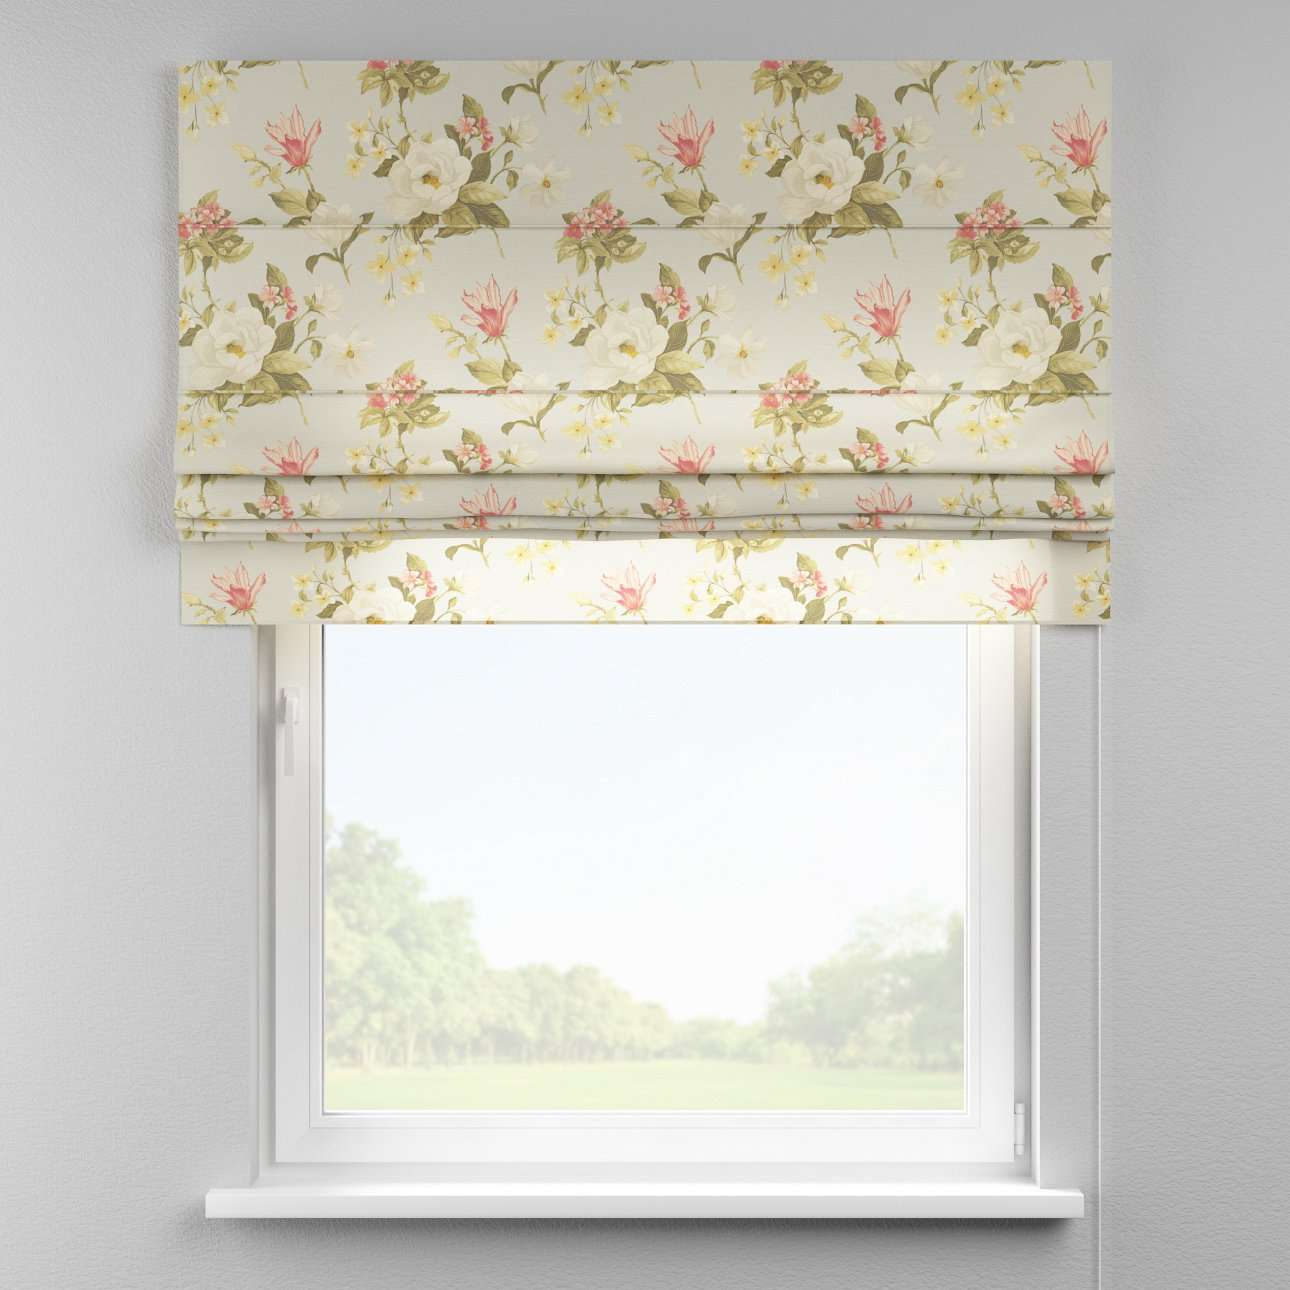 Padva roman blind  80 × 170 cm (31.5 × 67 inch) in collection Londres, fabric: 123-65